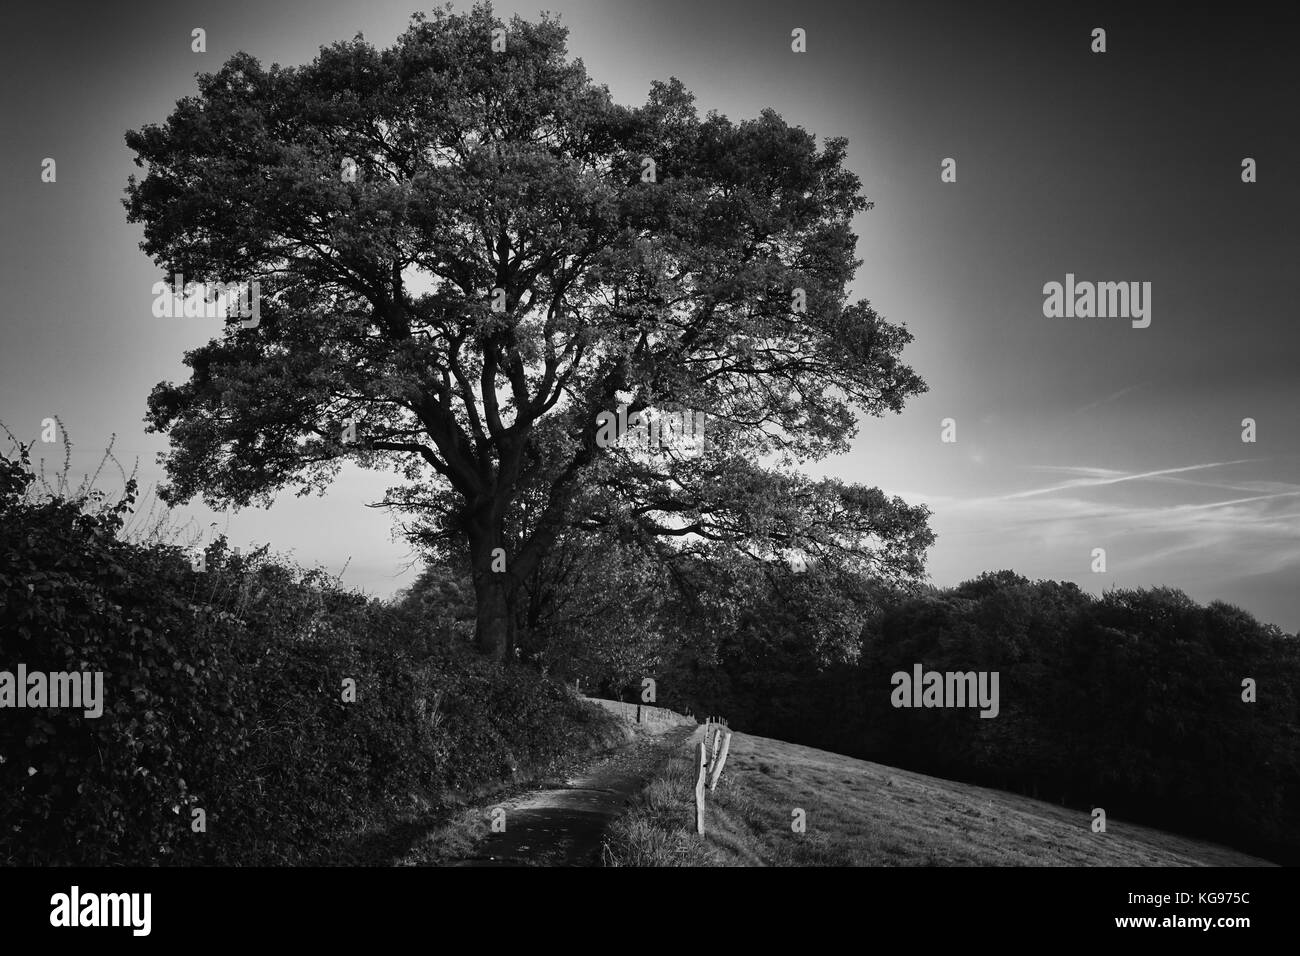 Tree and way in the dark - Stock Image